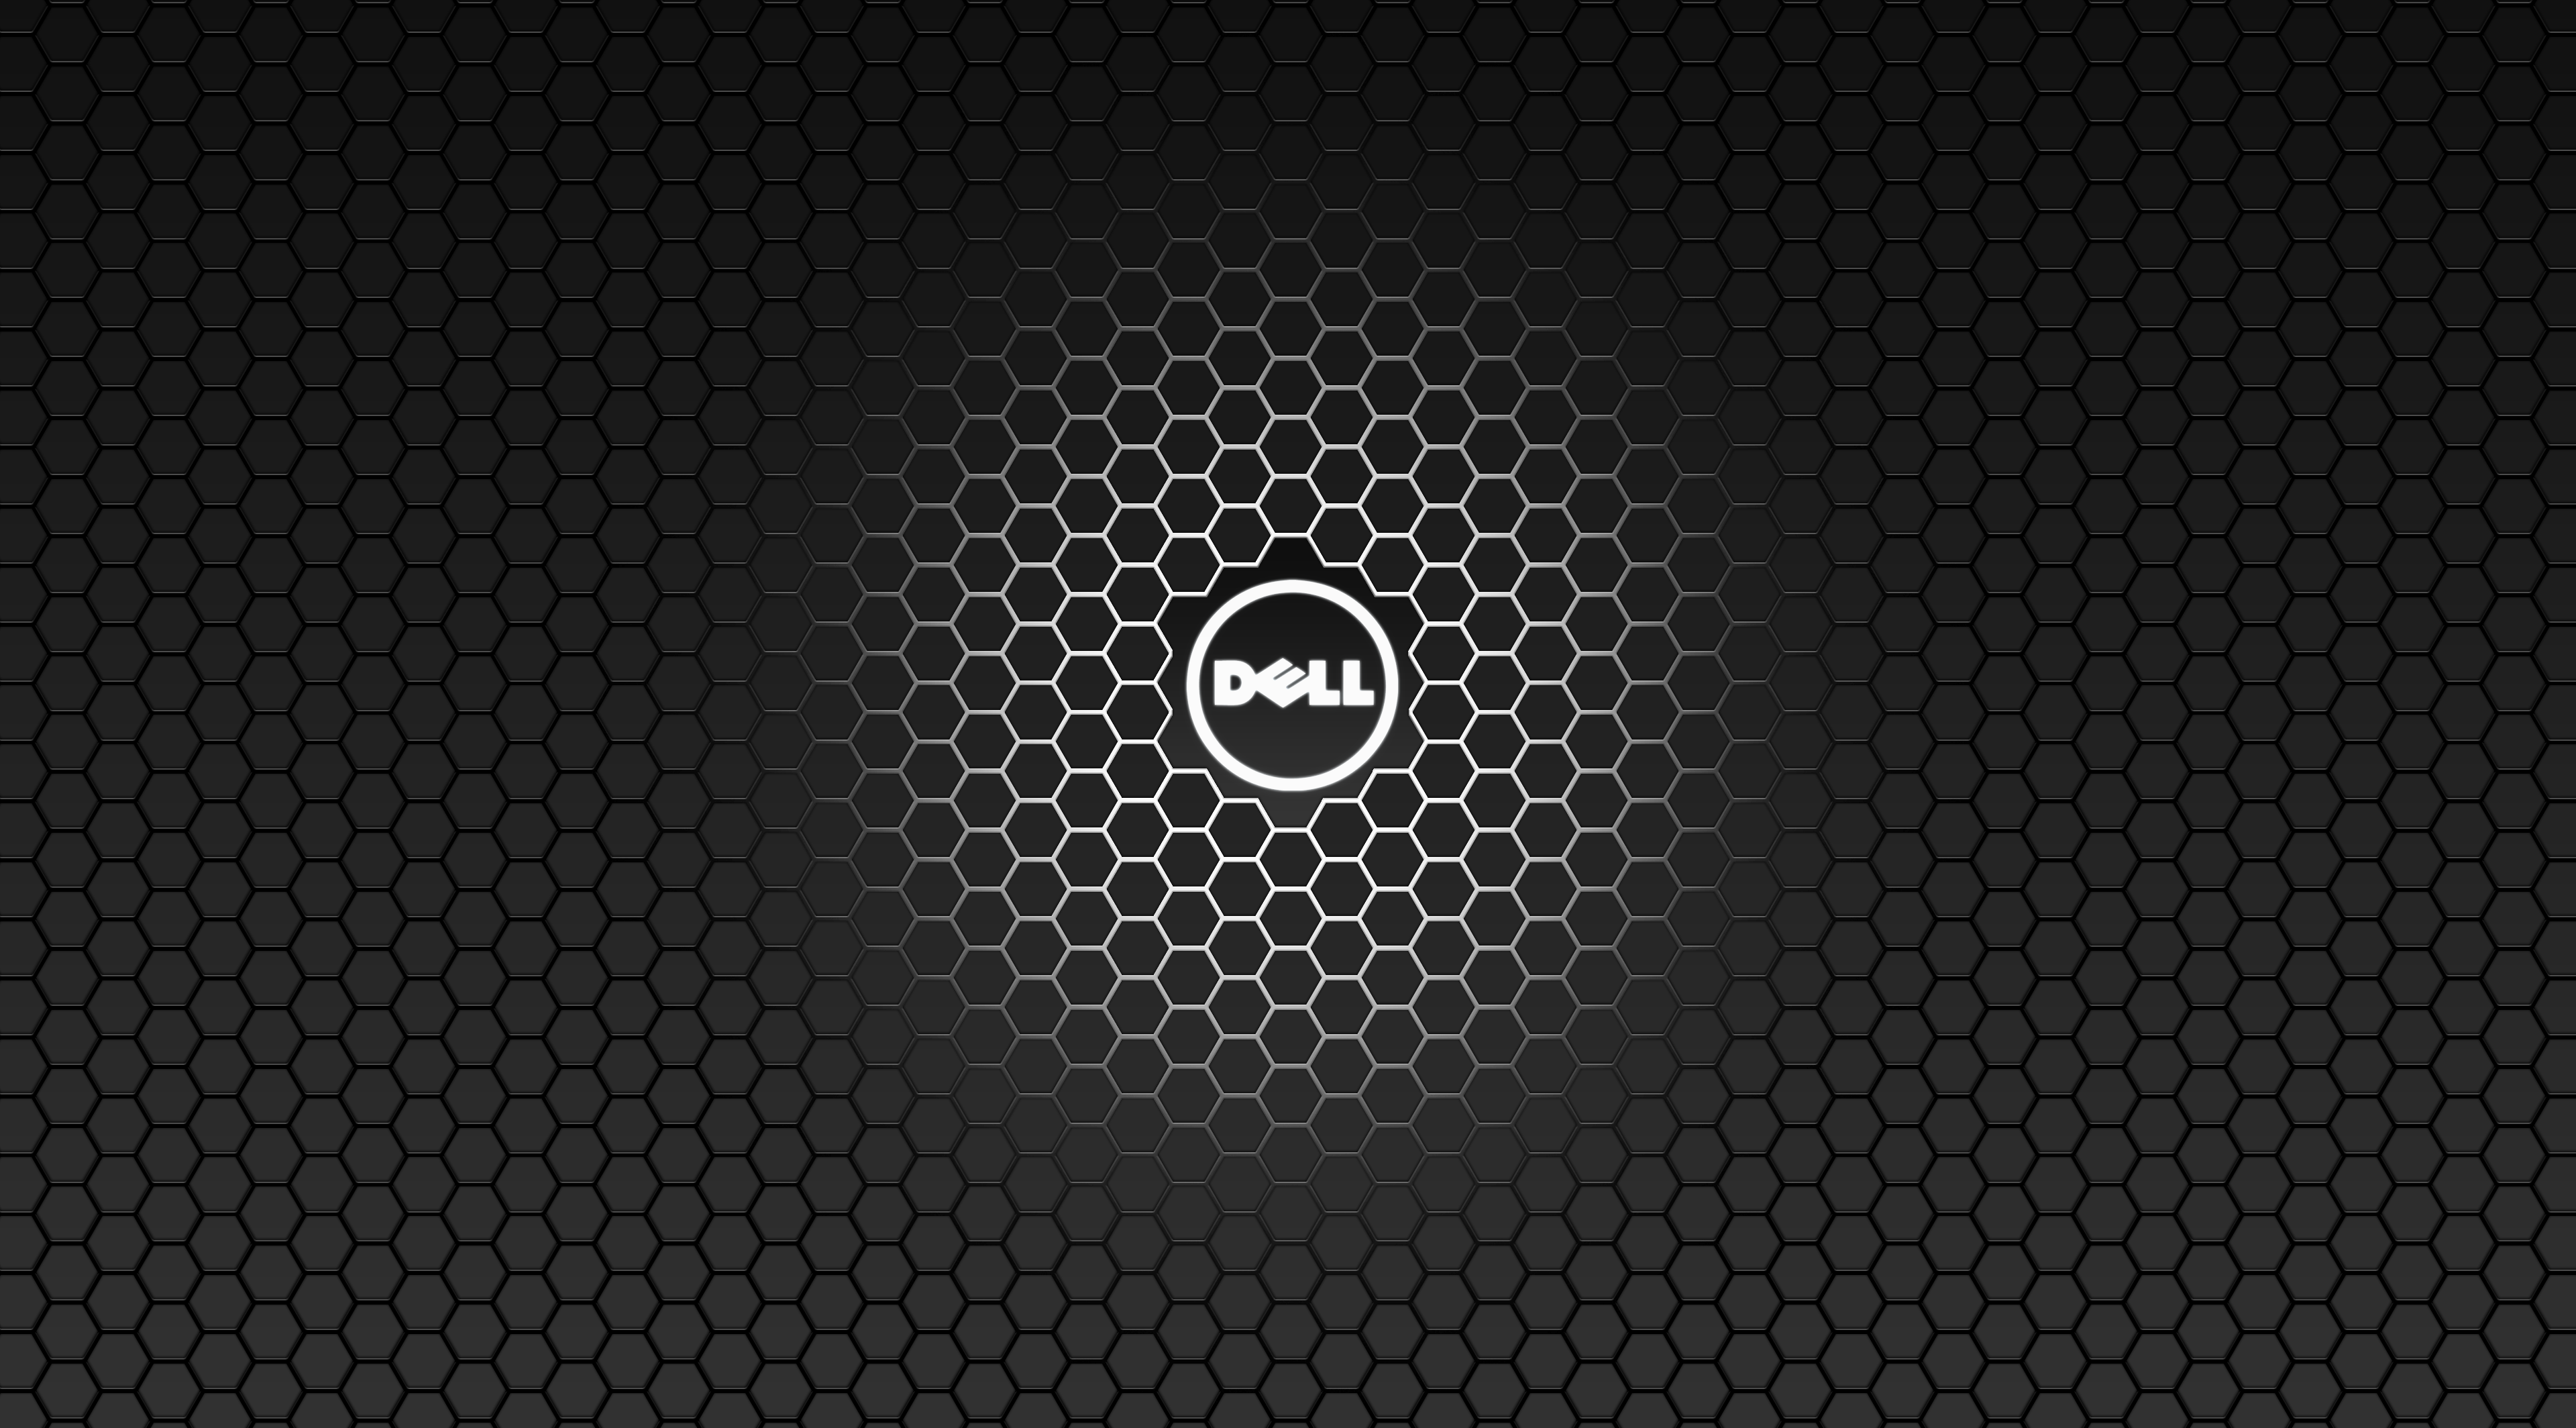 Dell Wallpaper Full HD Wallpaper and Background 3840x2128 ID